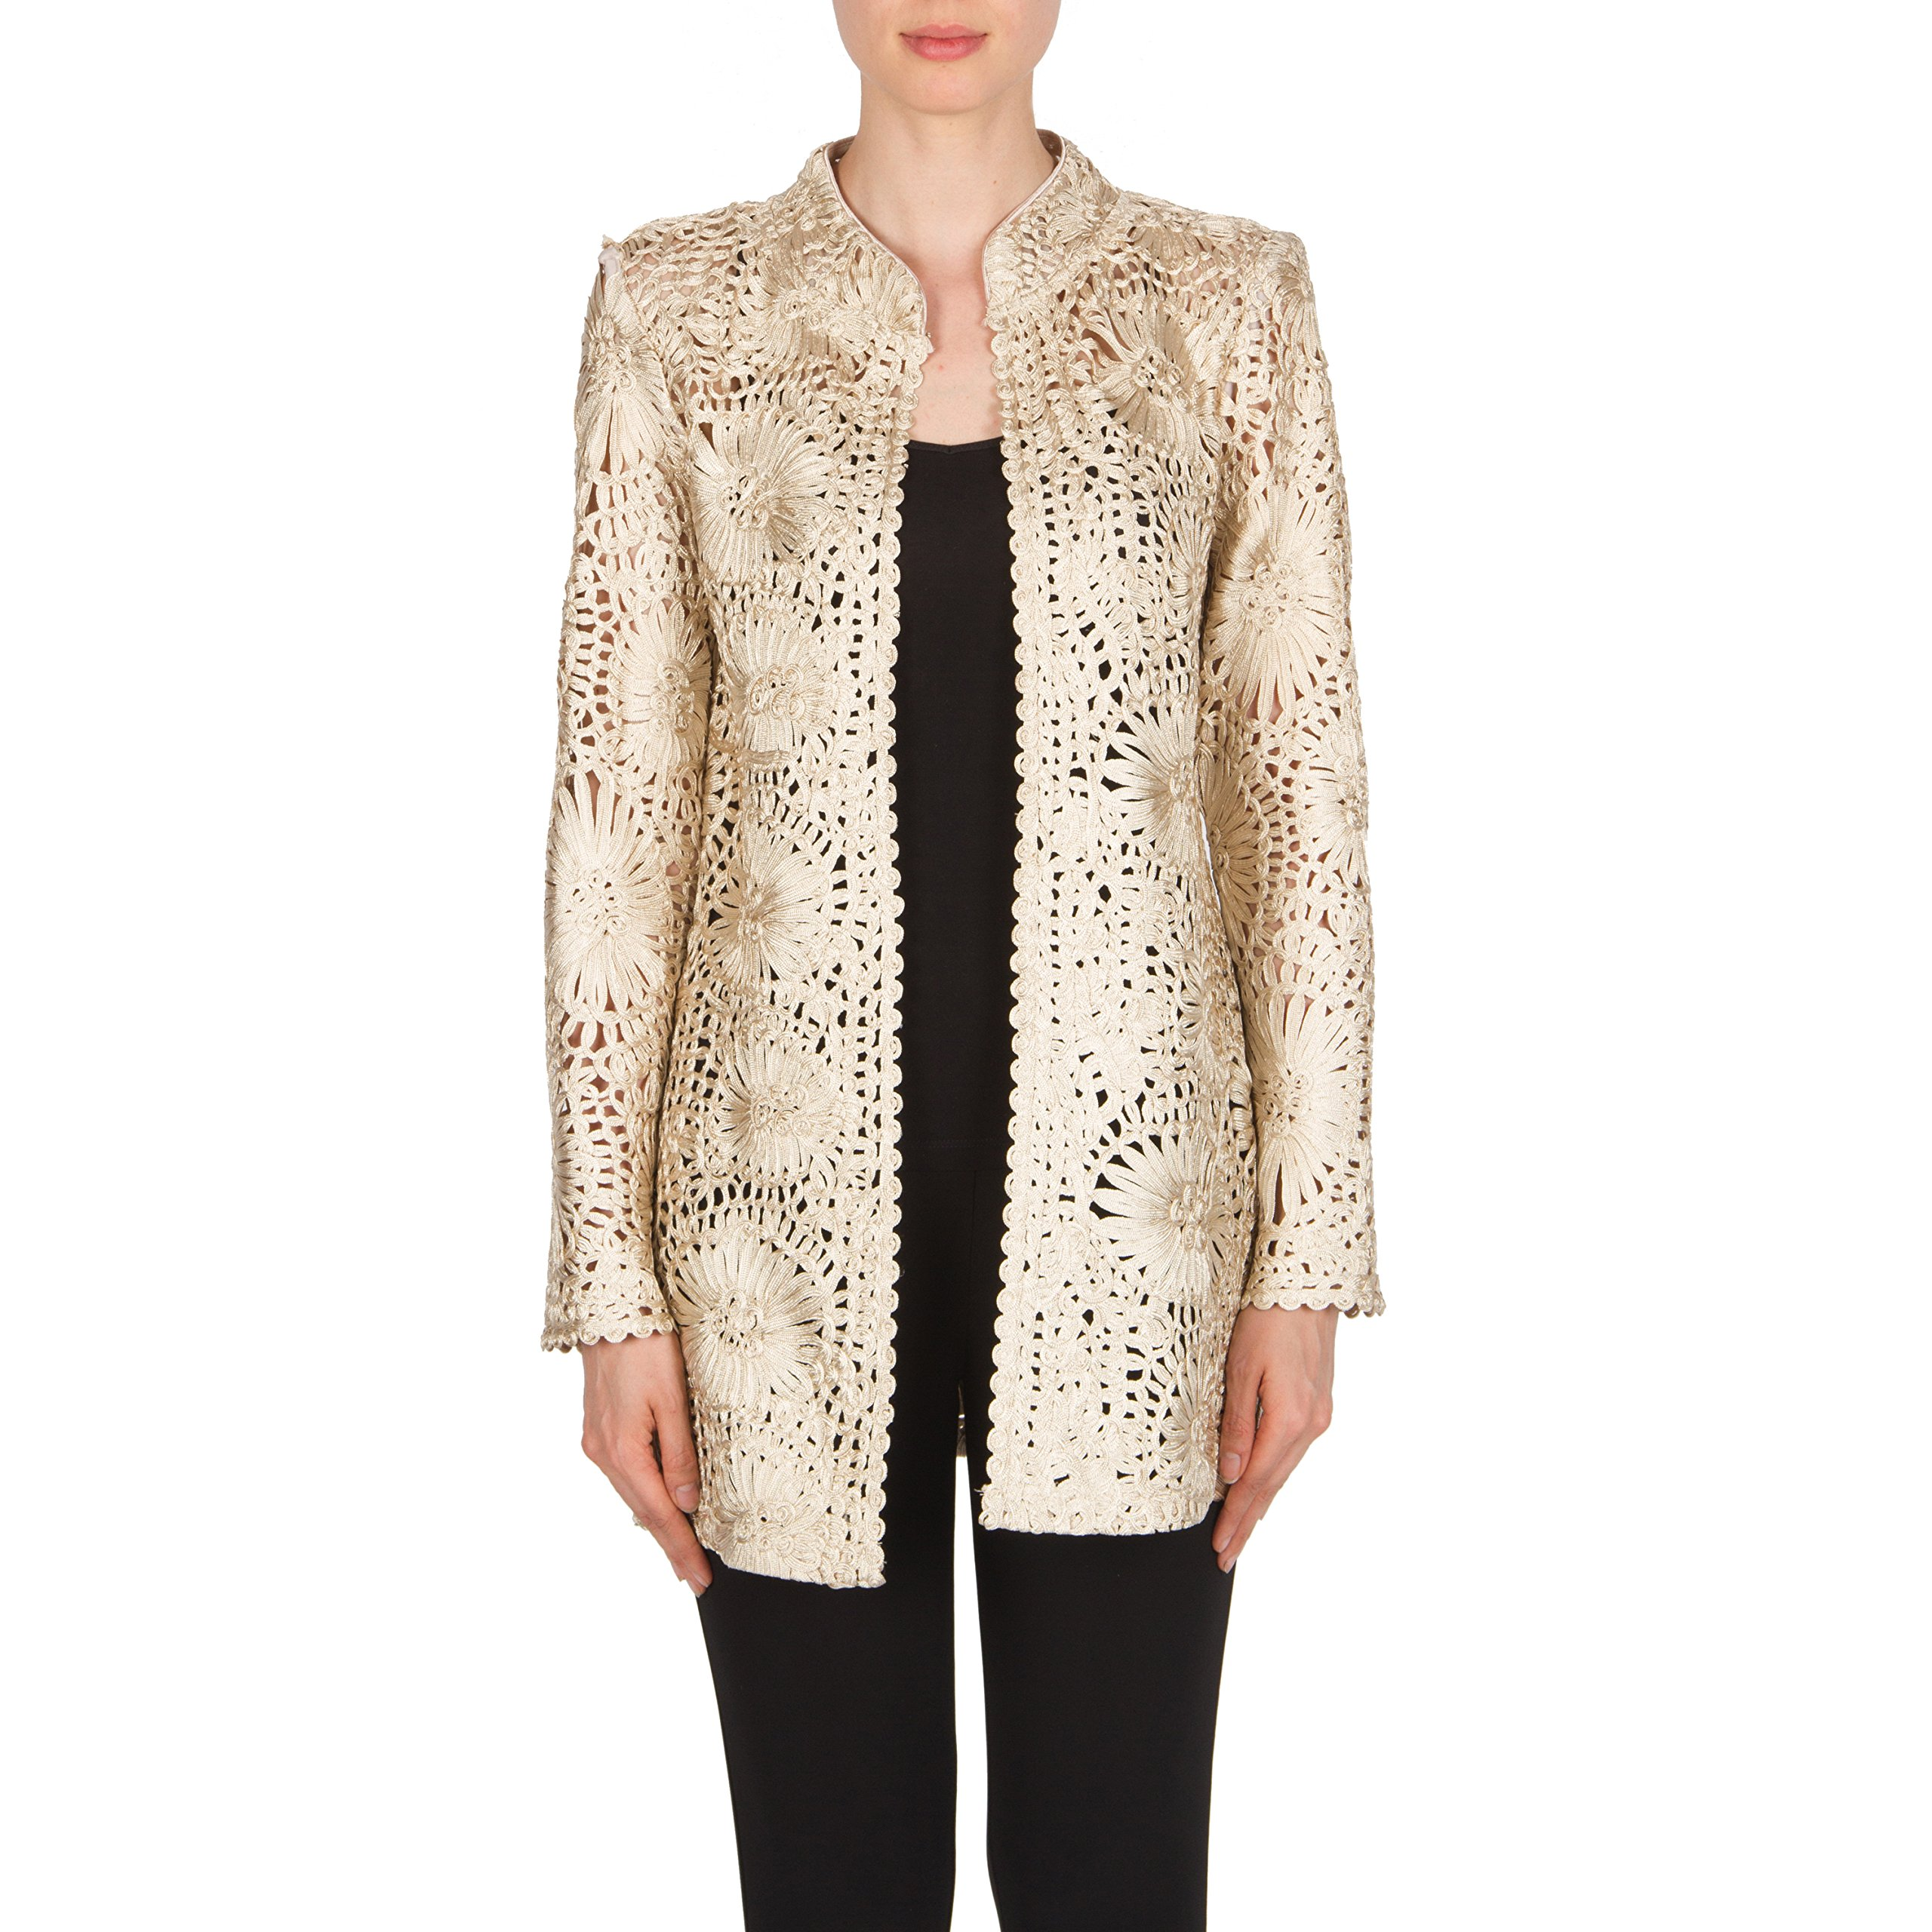 Joseph Ribkoff Crochet-Style Cover Up Jacket Style 174504 Size 8